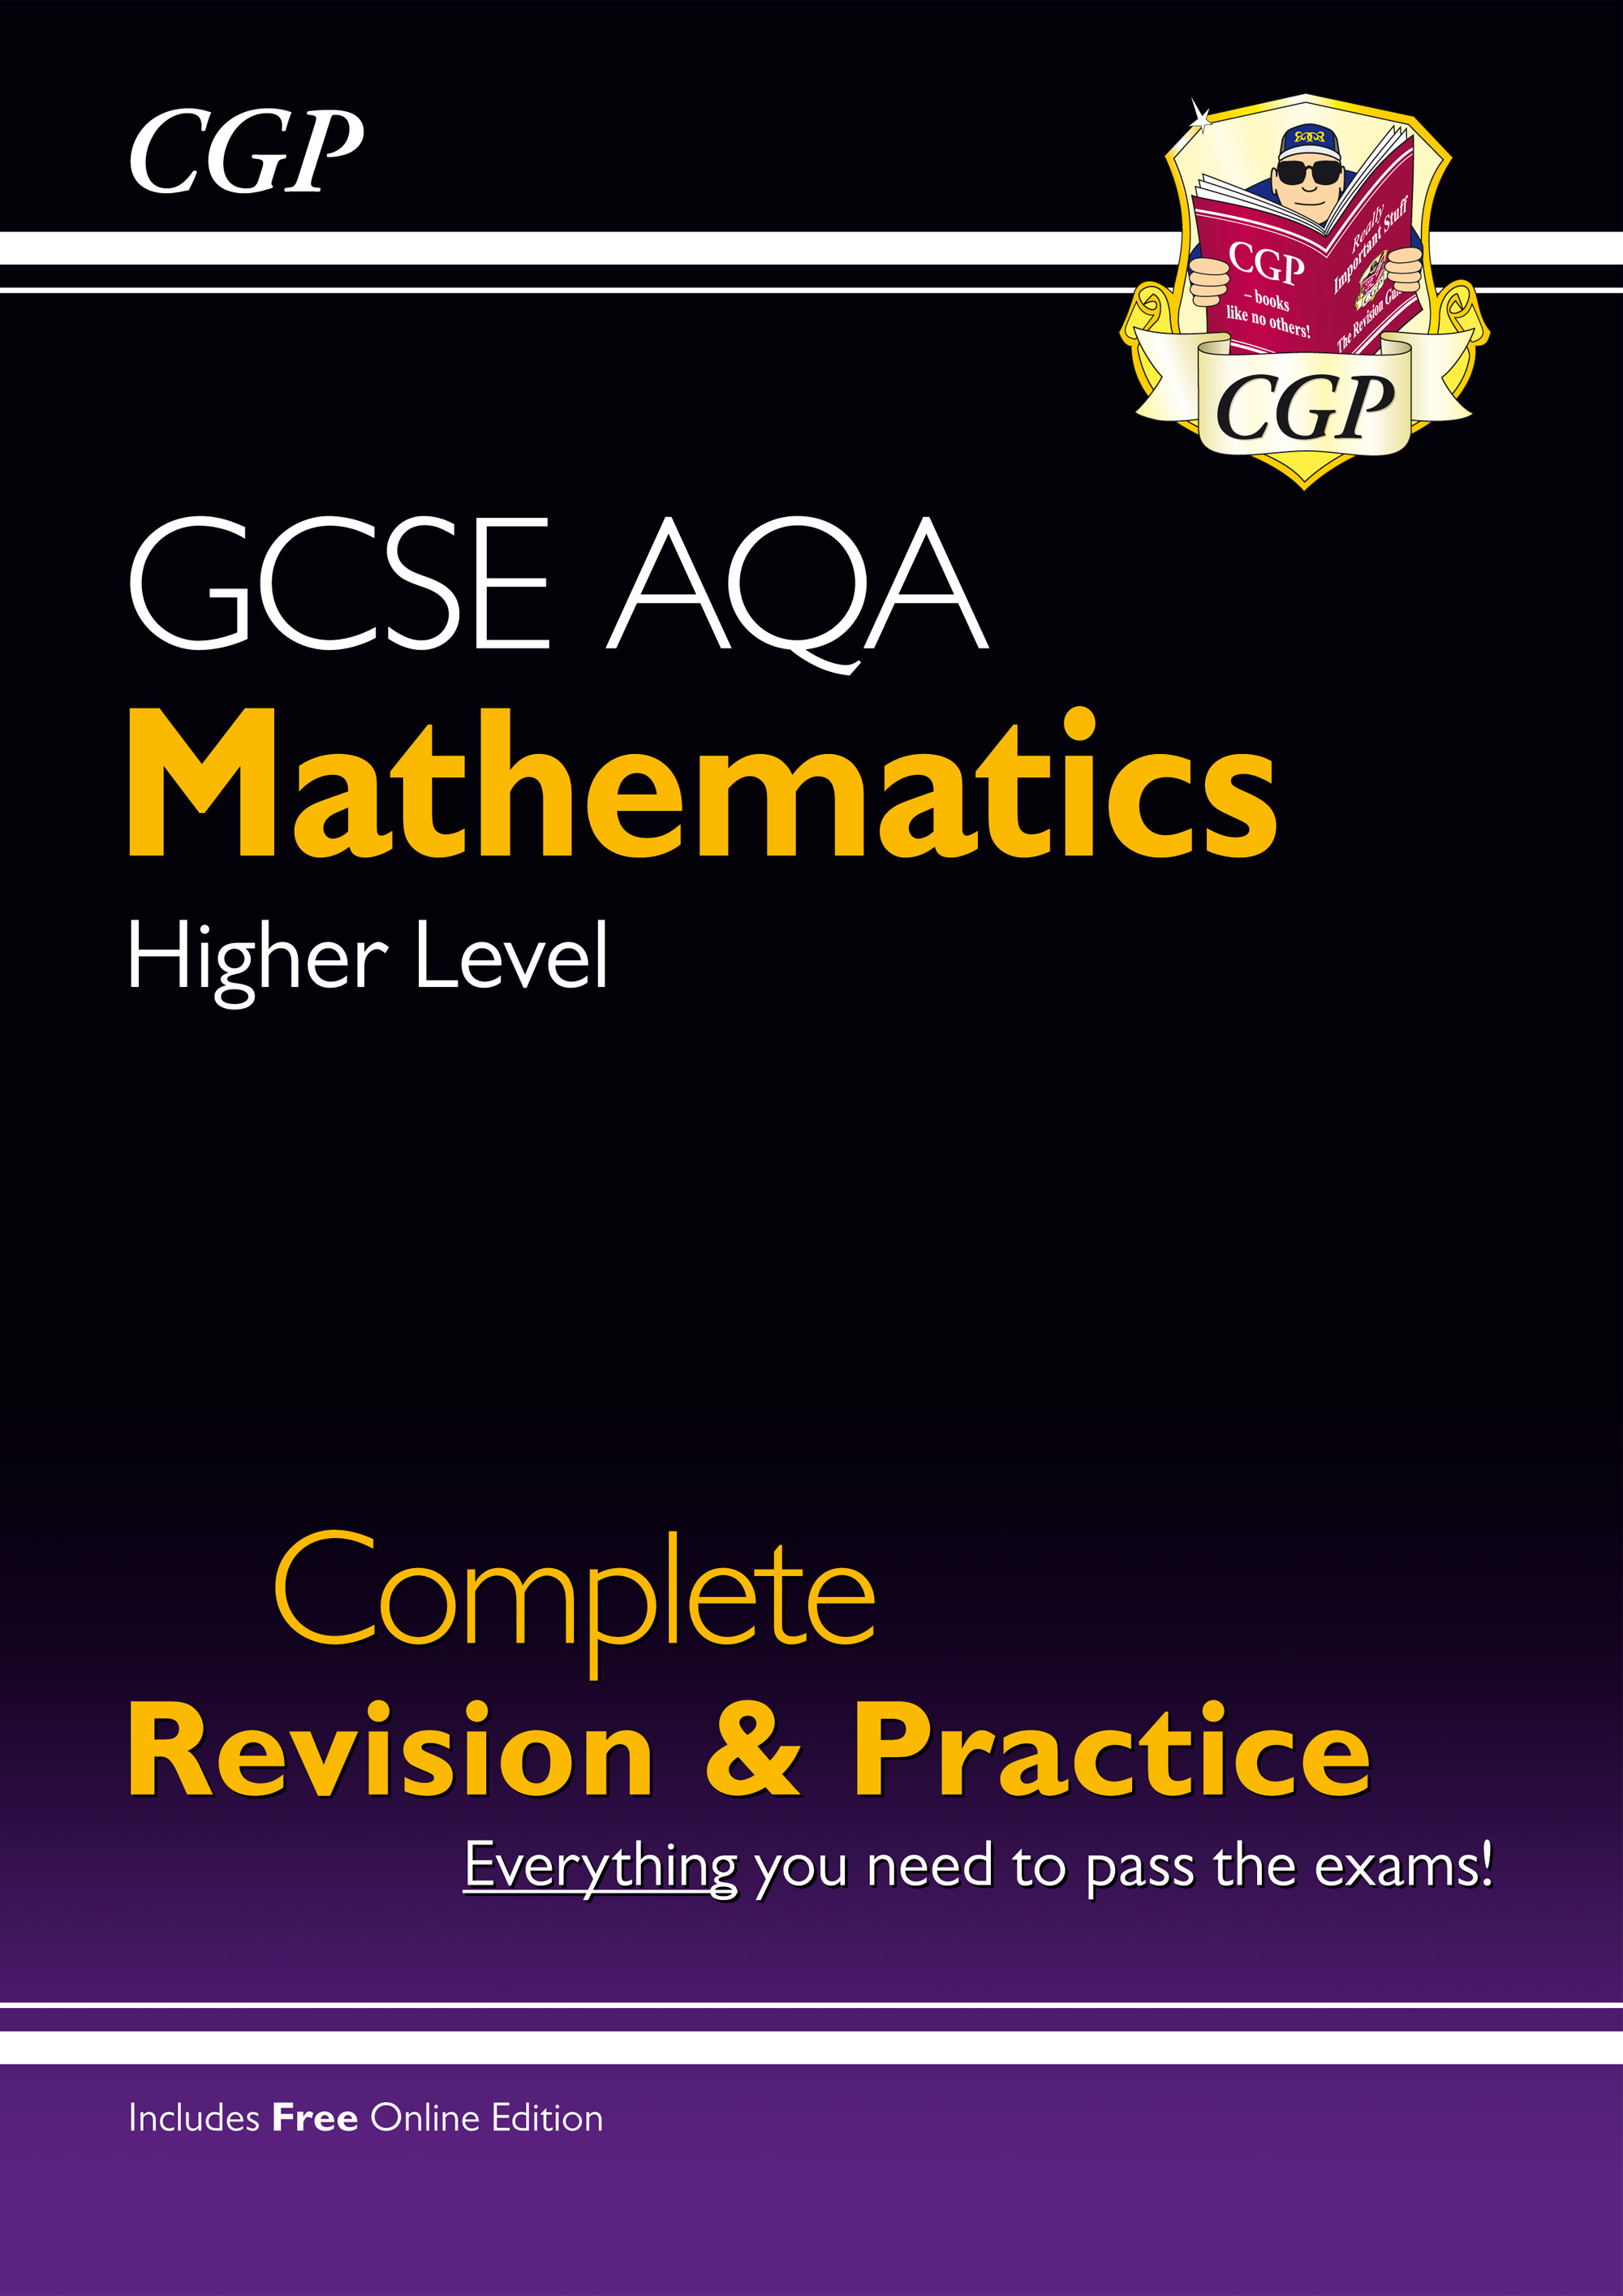 MQHS43 - GCSE Maths AQA Complete Revision & Practice: Higher - Grade 9-1 Course (with Online Edition